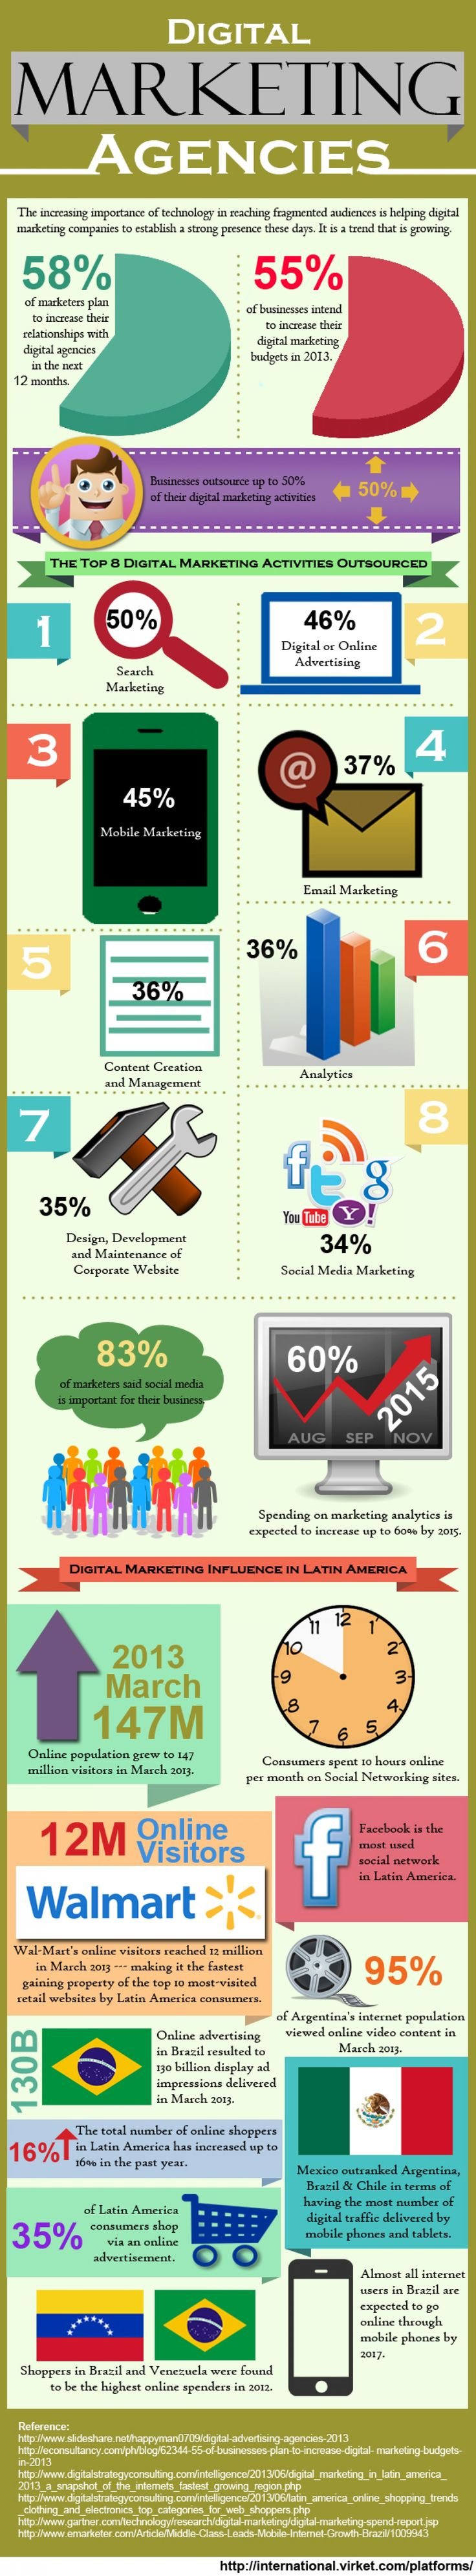 Digital Marketing Agency Infographic By www.linkedin.com/in/seoexpertindiaridds